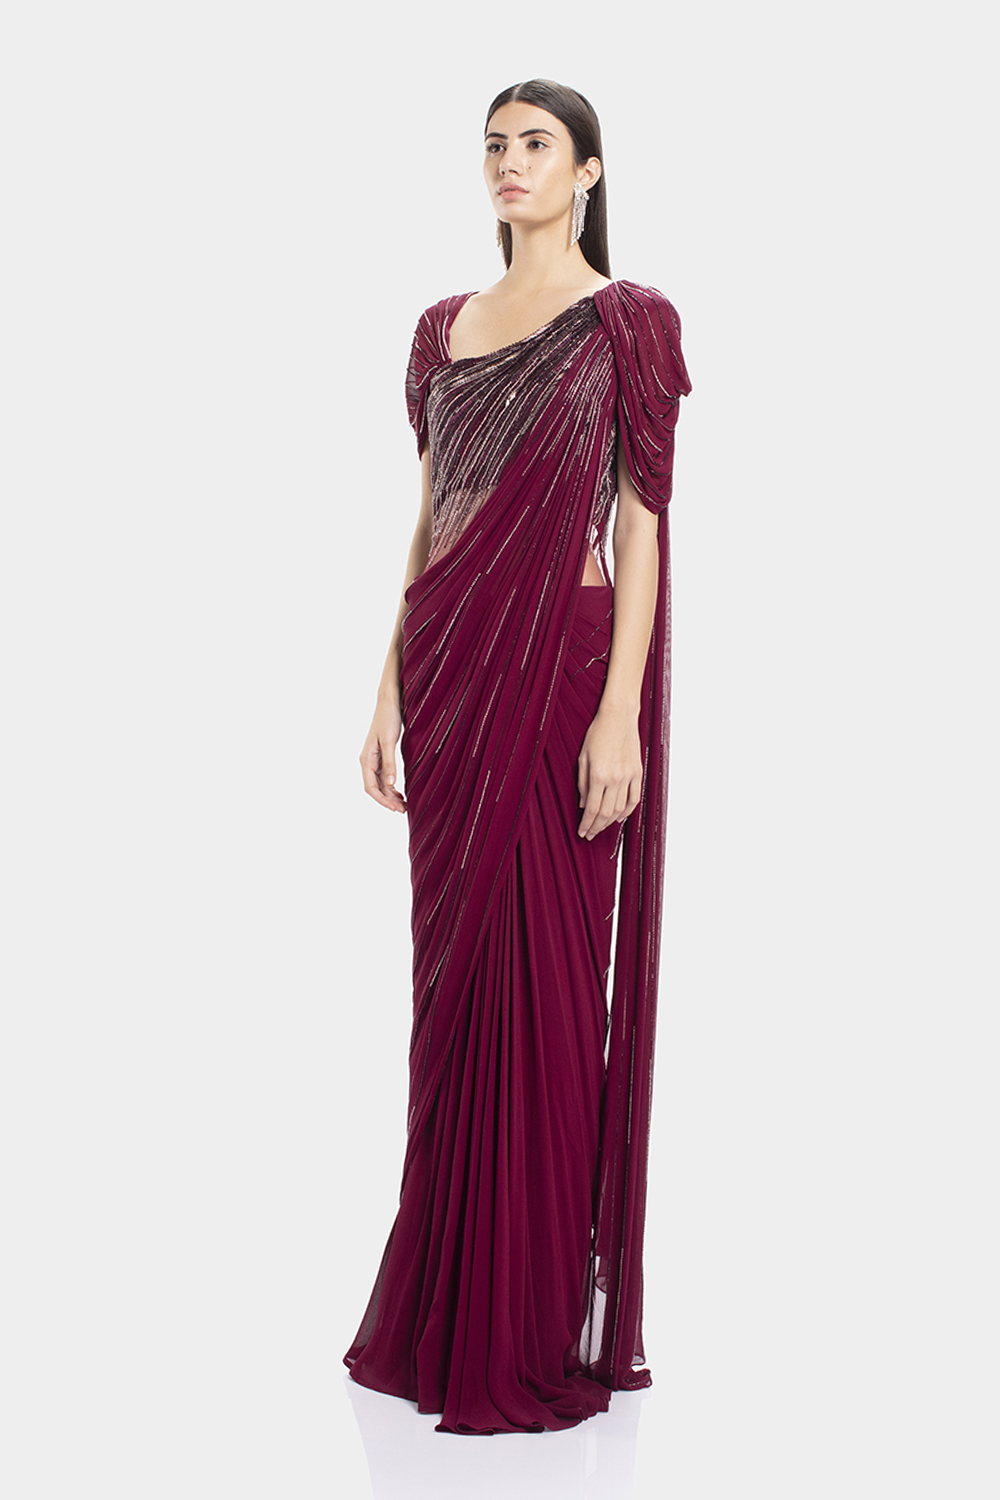 Berry Draped Embellished Saree Gown Gaurav Gupta Studio